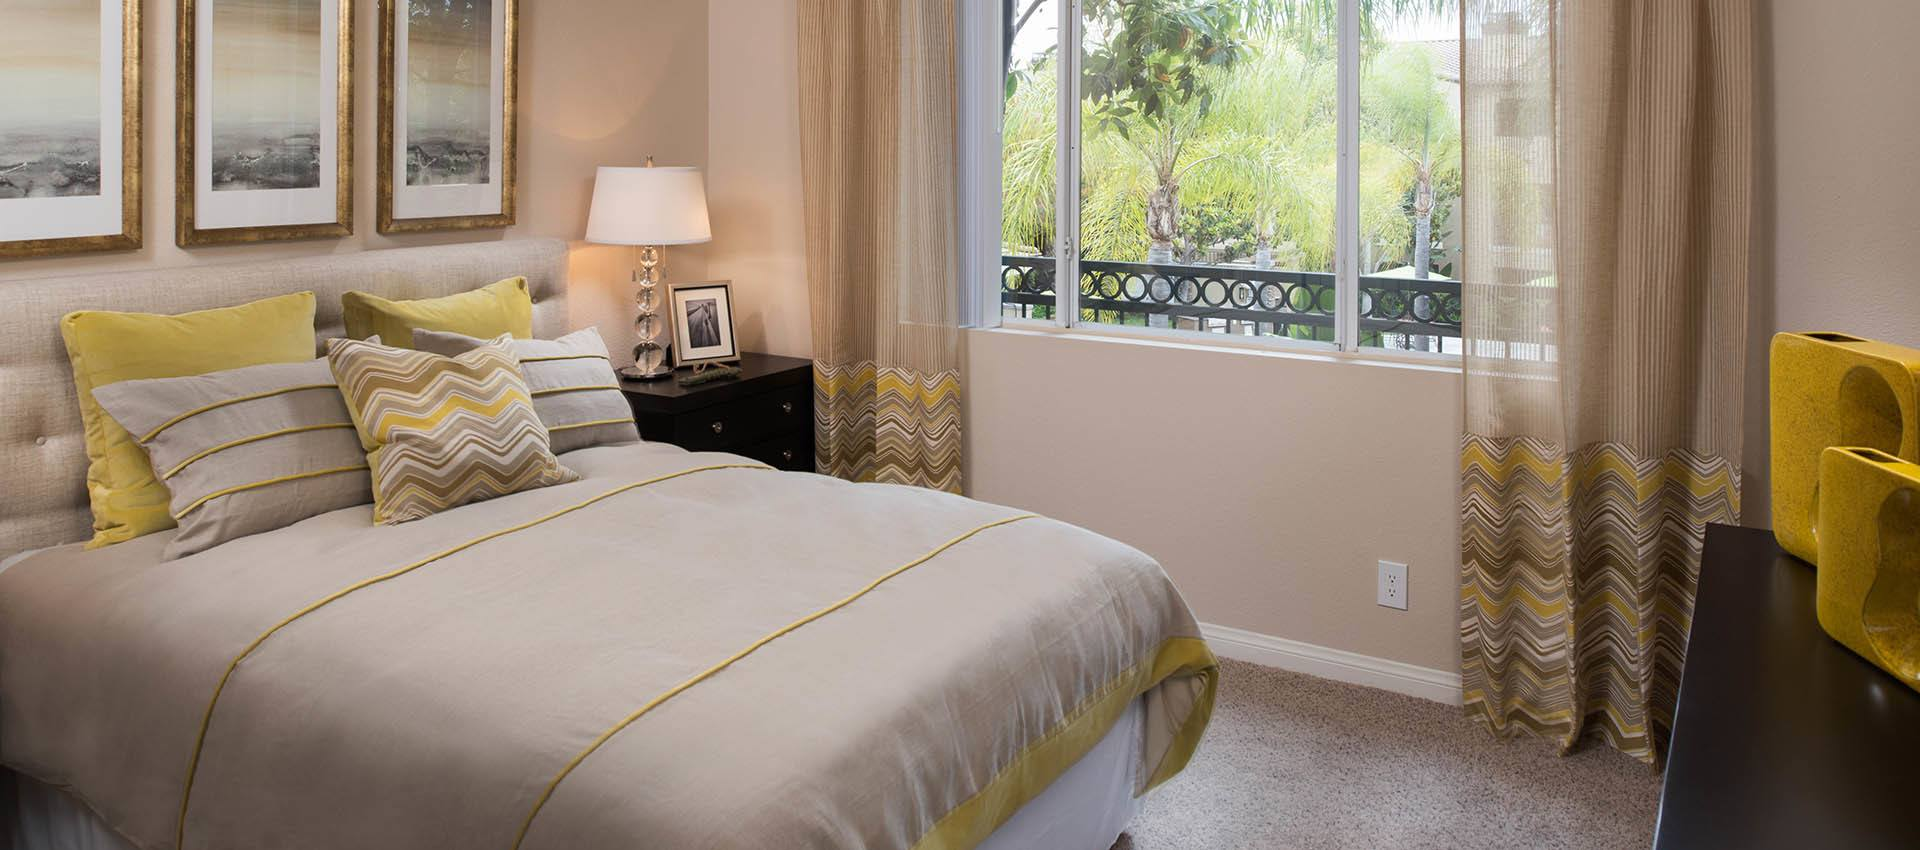 Comfortable Bedroom With Natural Light at Paloma Summit Condominium Rentals in Foothill Ranch, CA